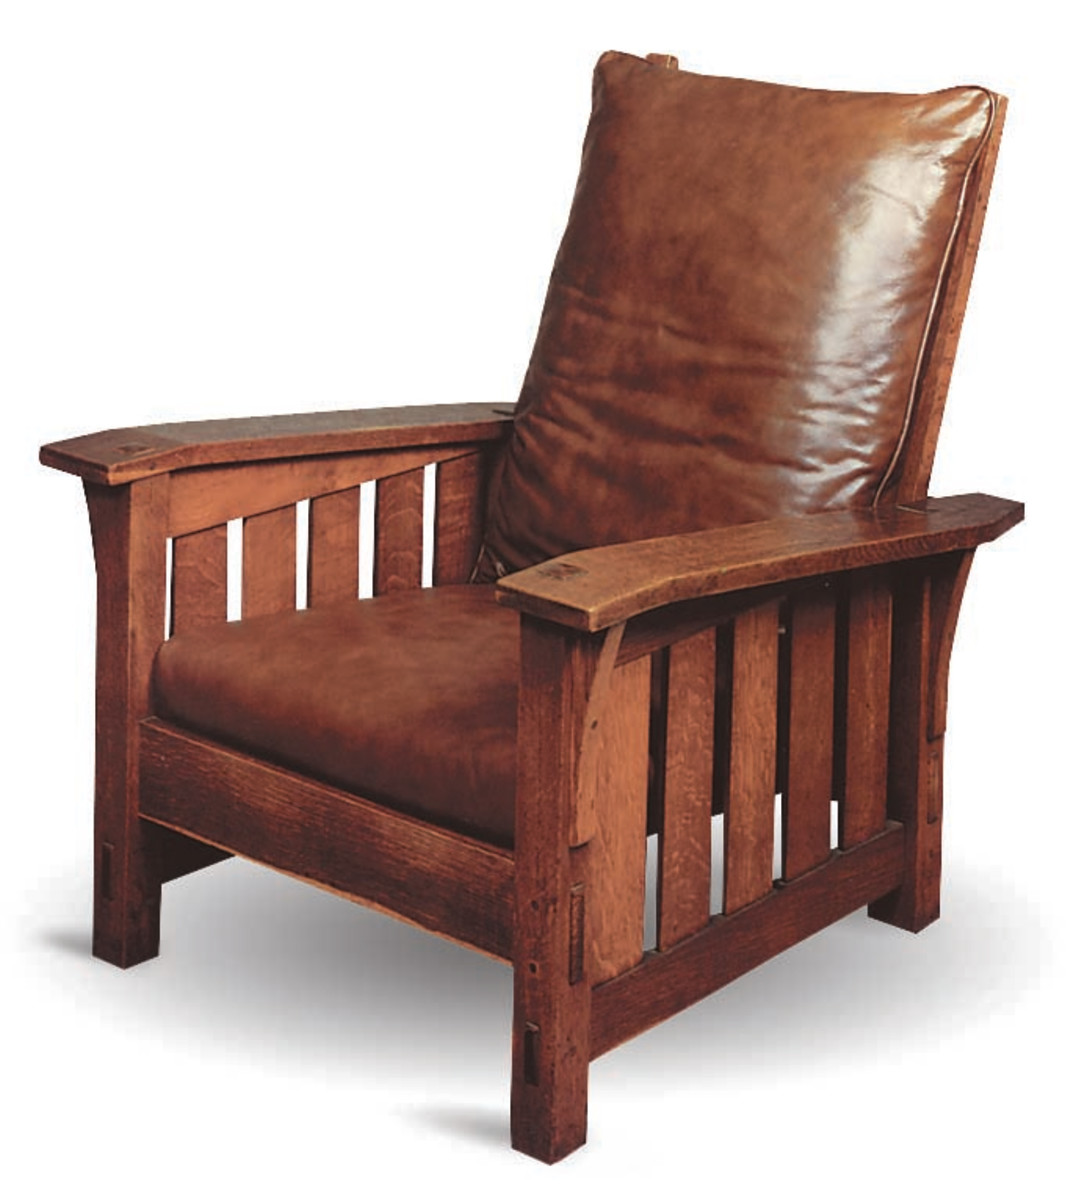 Leopold Stickley's finest tribute to William Morris, the leader and champion of the English Arts & Crafts Movement, this chair features long graceful bowed arms supported by elongated corbels, slatted sides, and adjustable back.